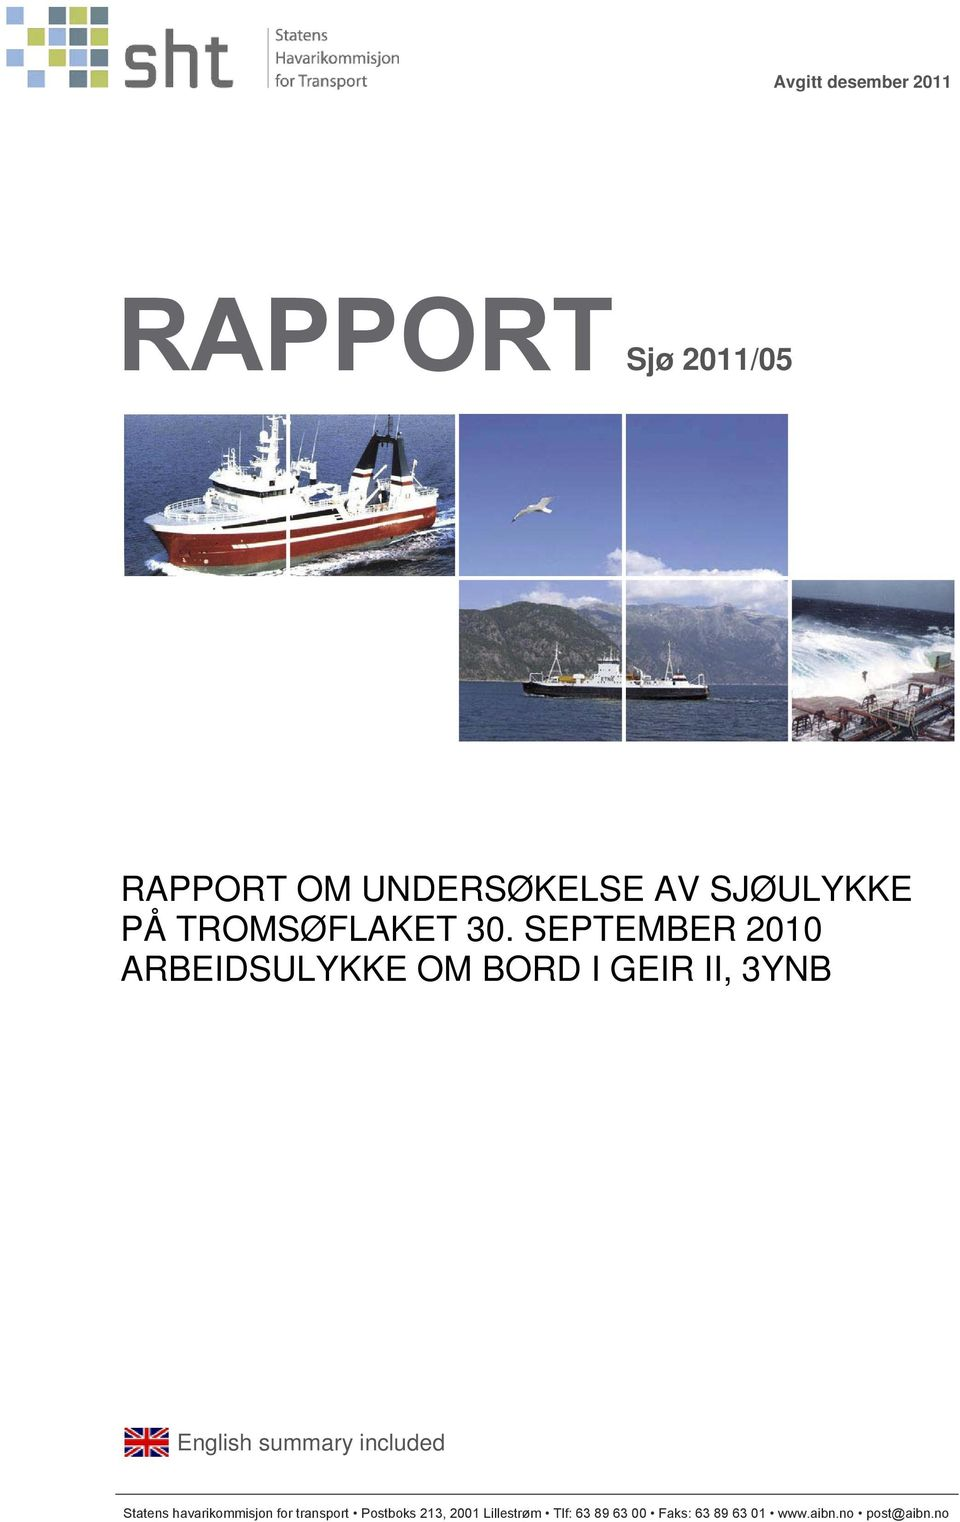 SEPTEMBER 2010 ARBEIDSULYKKE OM BORD I GEIR II, 3YNB English summary